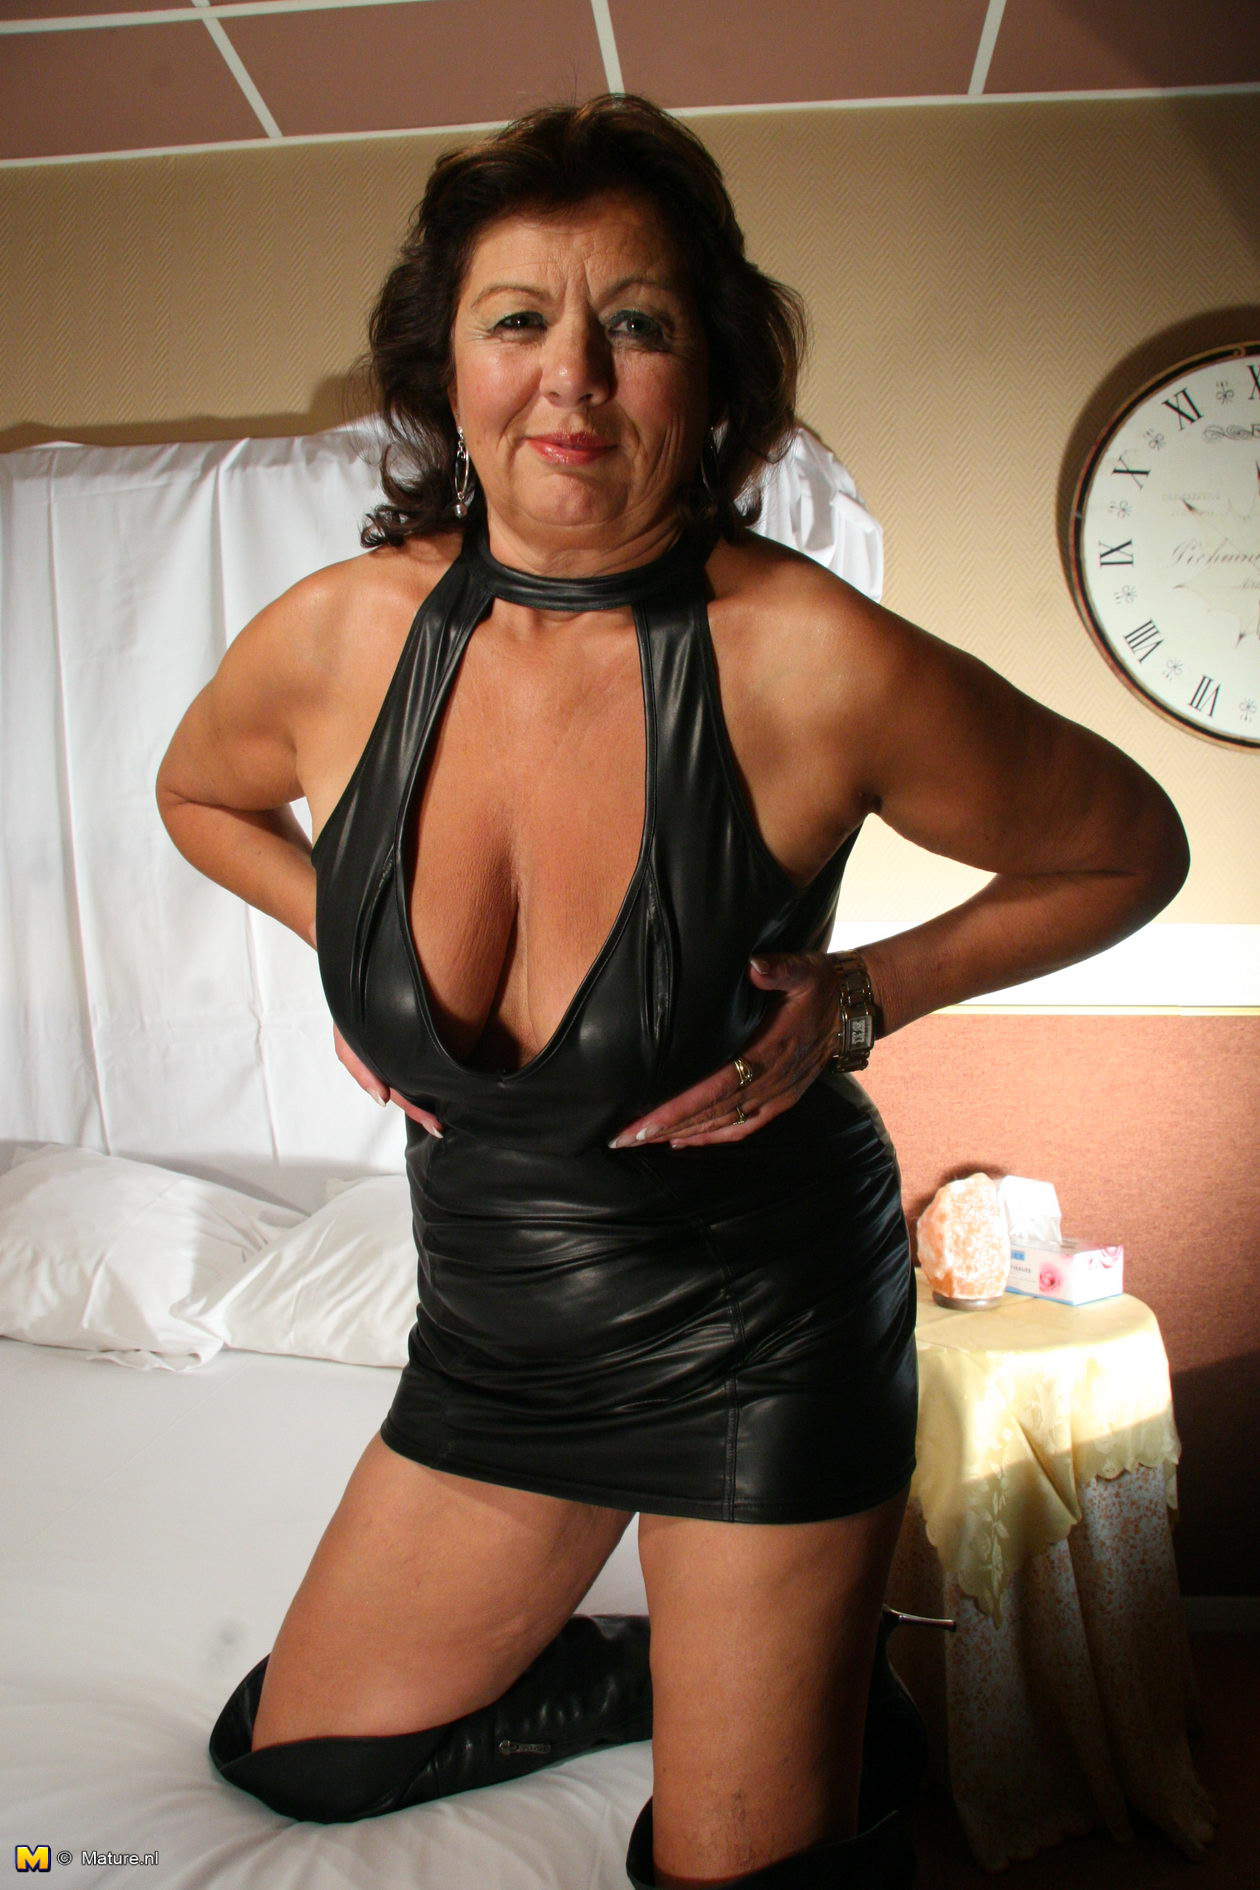 bondage games with your wife